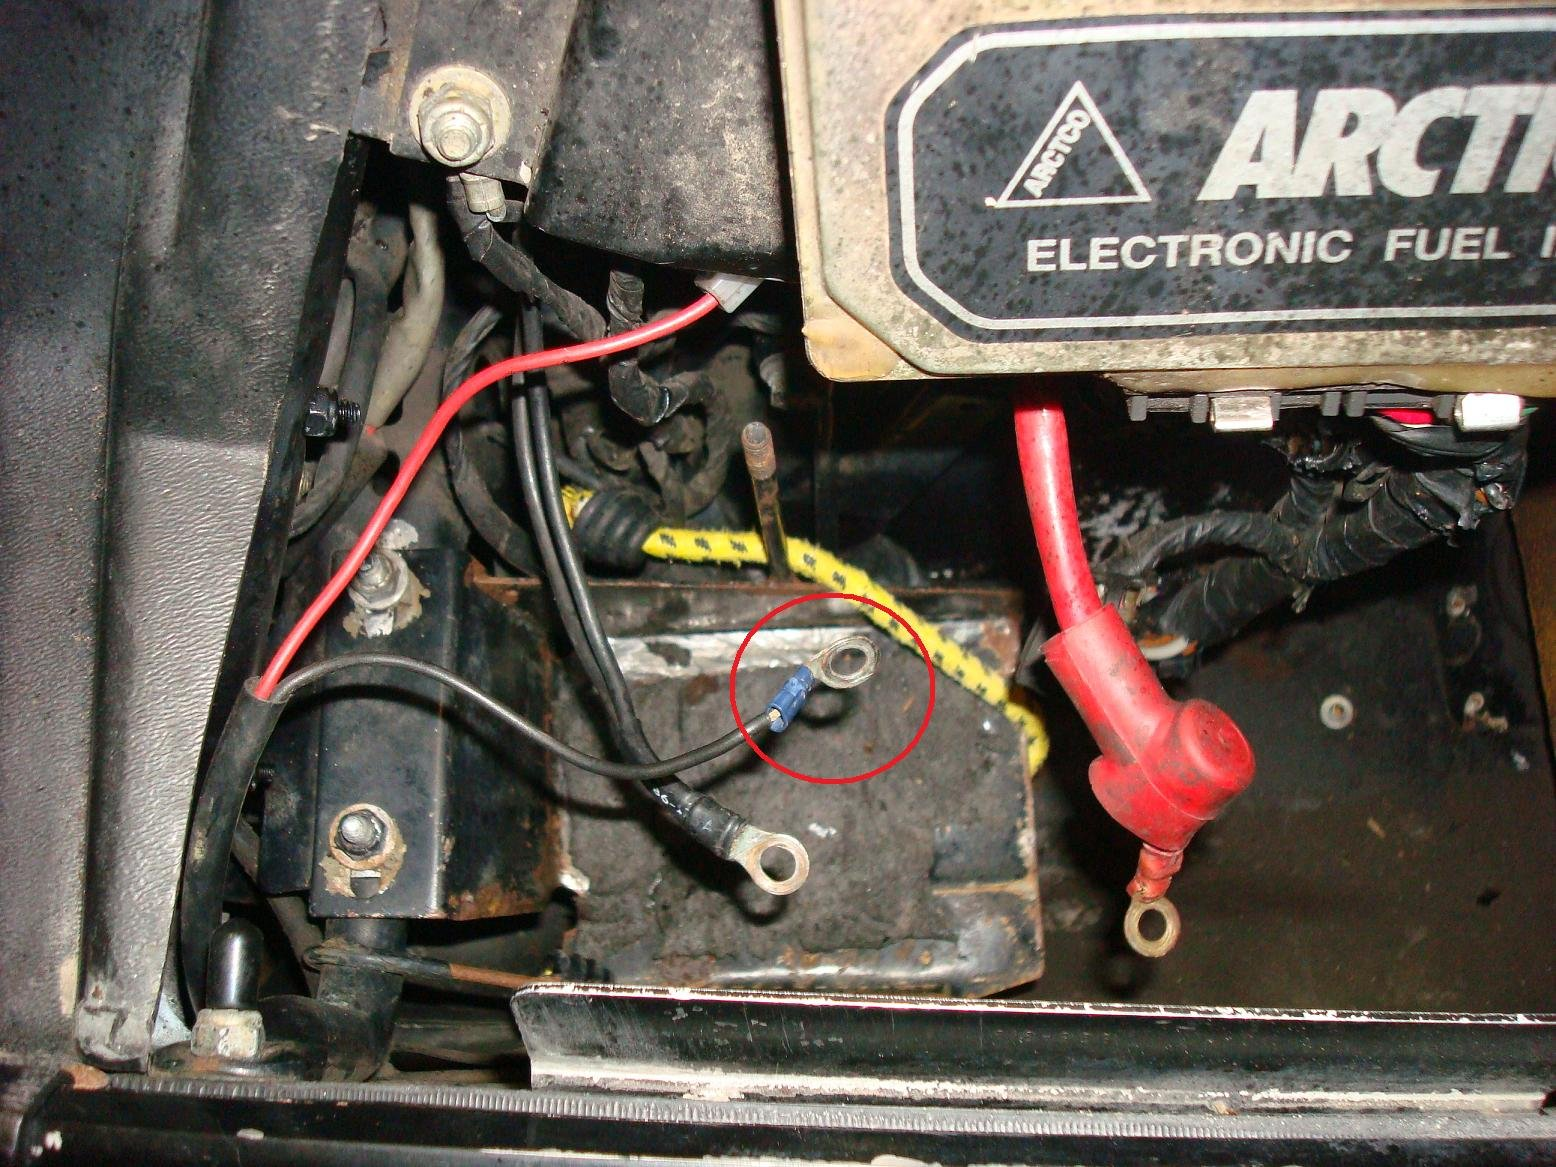 Arctic Cat 700 Fuse Box Diagram 31 Wiring Images Subaru Baja 2005 Fuses 185192d1264119283 95 Wildcat Efi Question Dsc02312 Arcticchat Com Forum